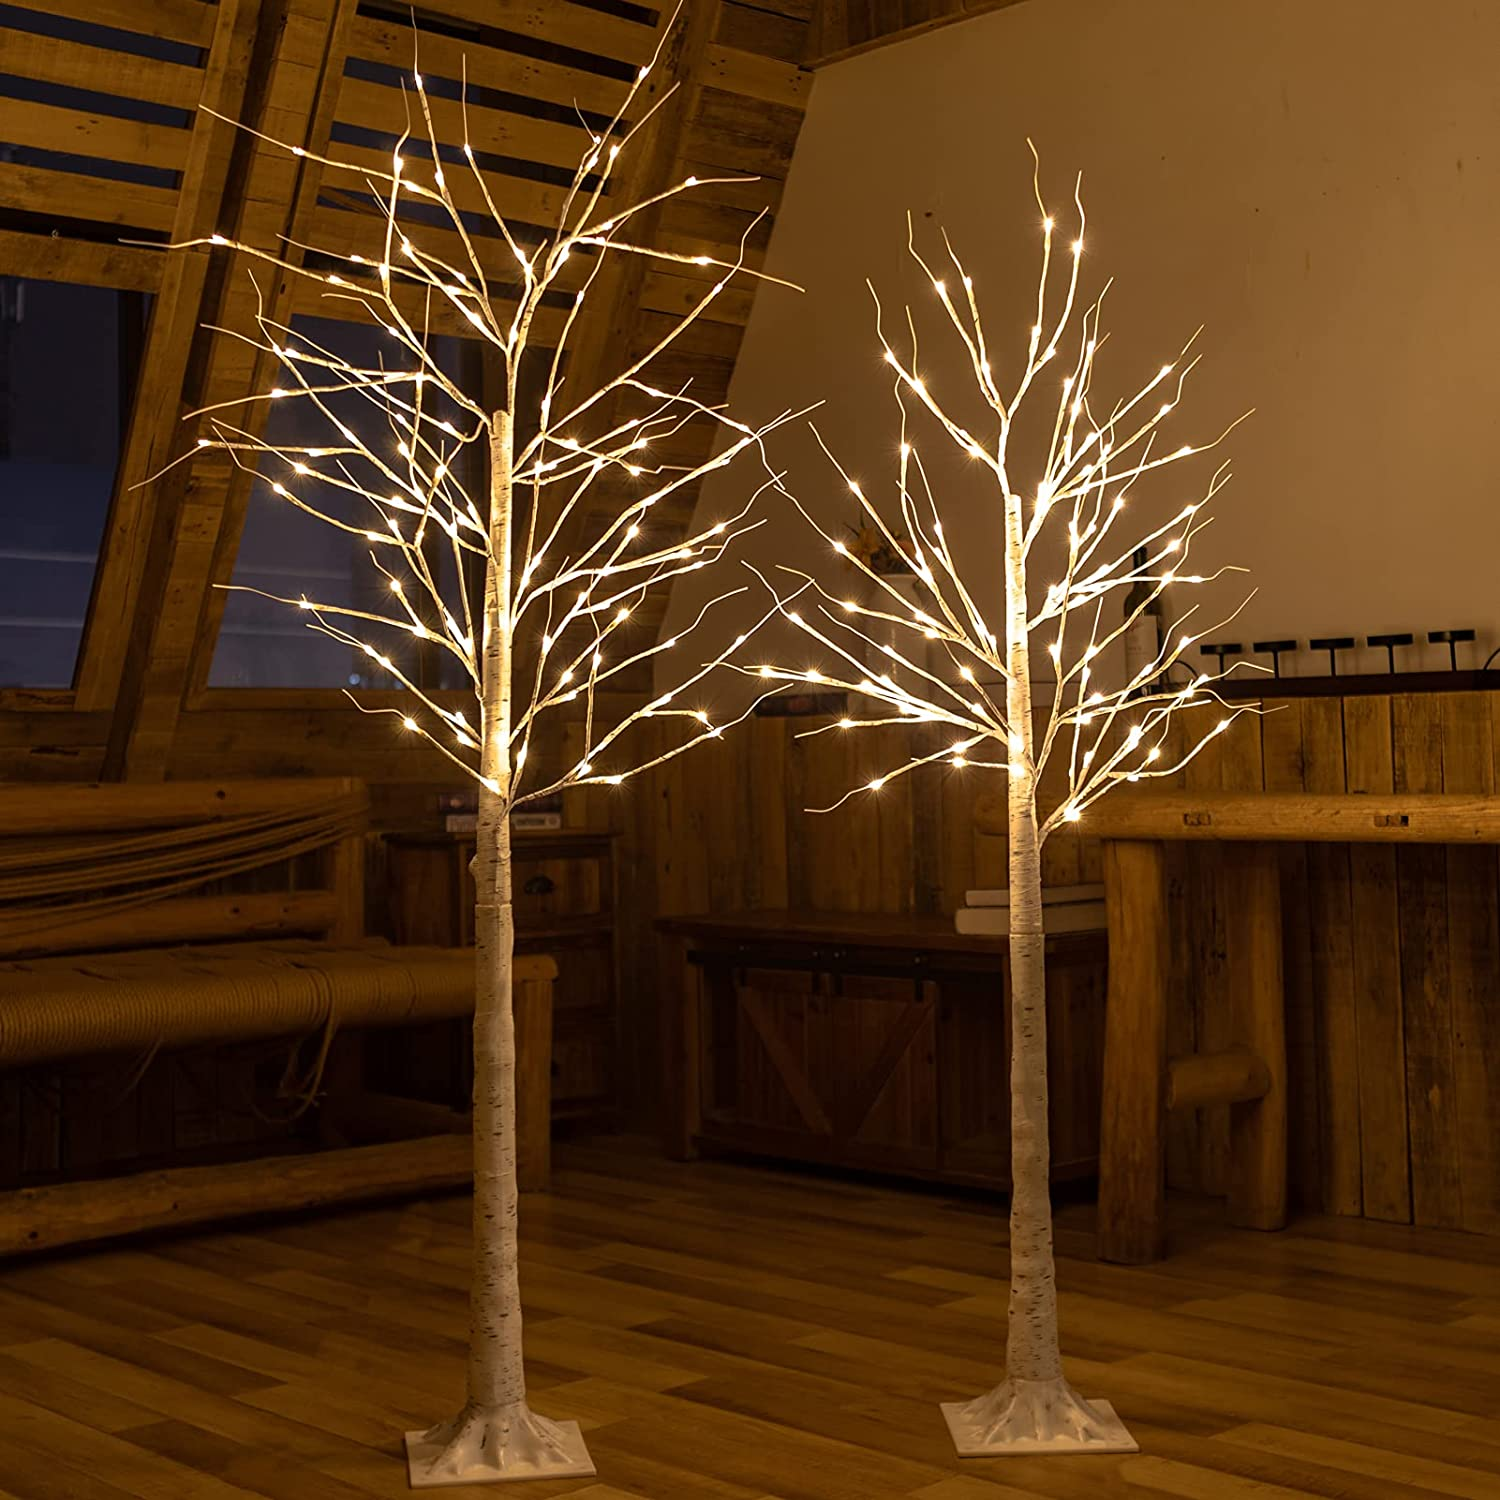 Set of 2 Medium 5and6ft 108LED Twig Birch Fairy Light Tree,Warm White Wisdom Artificial Branches Stand Lamp,Remote Dimmable 8 Flashing Modes,Decoration for Indoor Outdoor All Year Round Festival